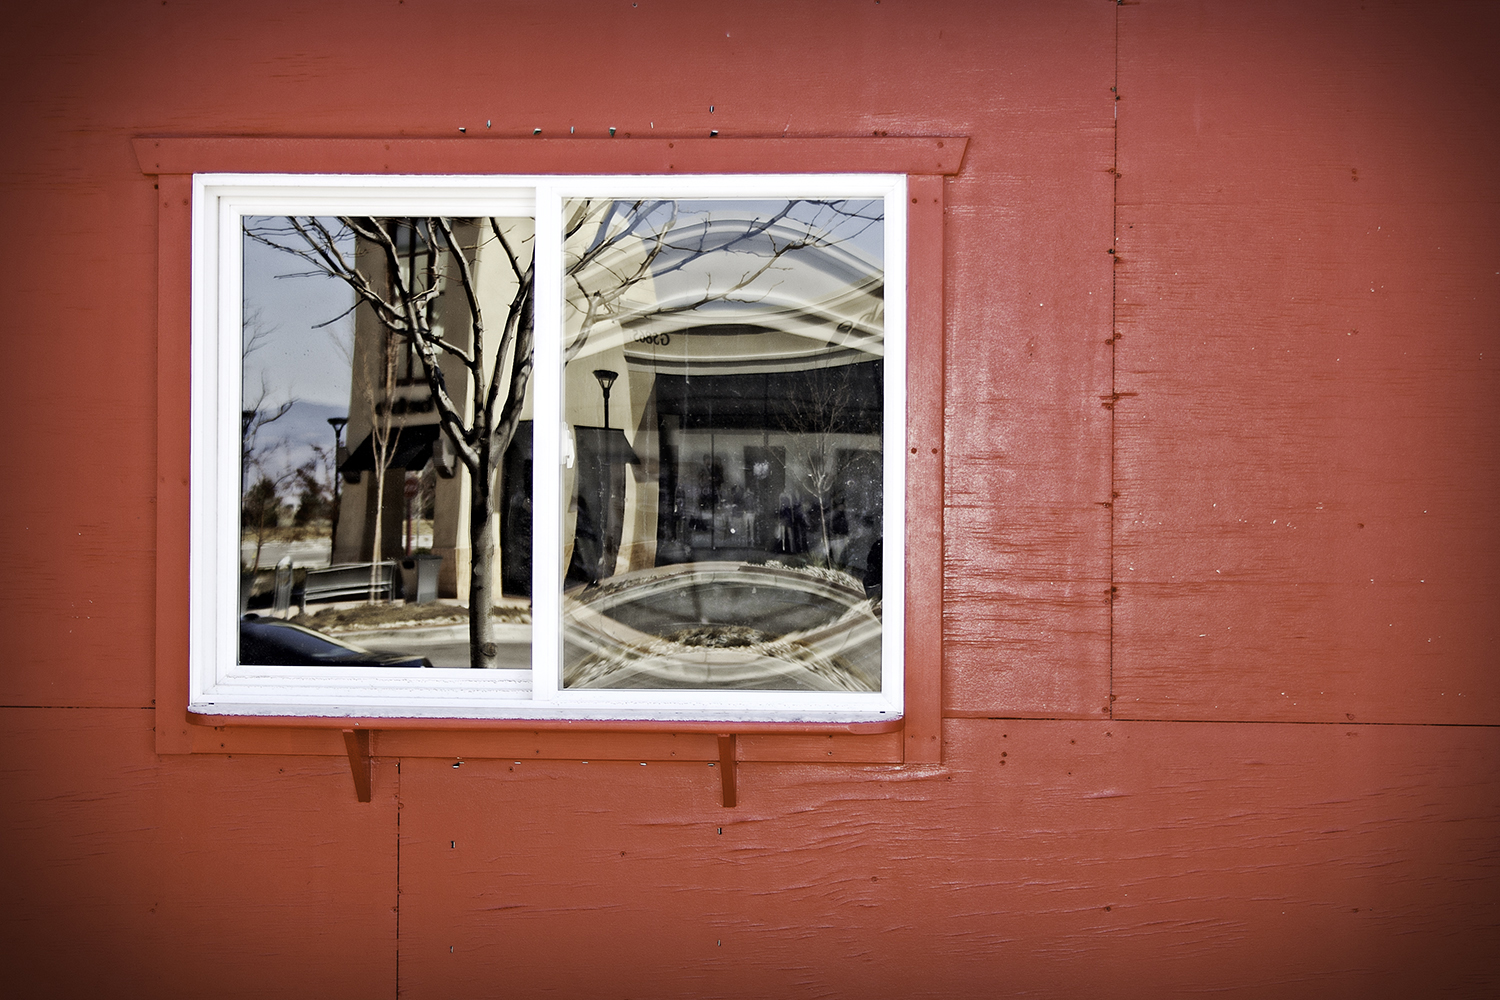 Reflection of the Bebe store against a fairly intense red wall.  Outdoor shops at Centerra, Loveland, Colorado.